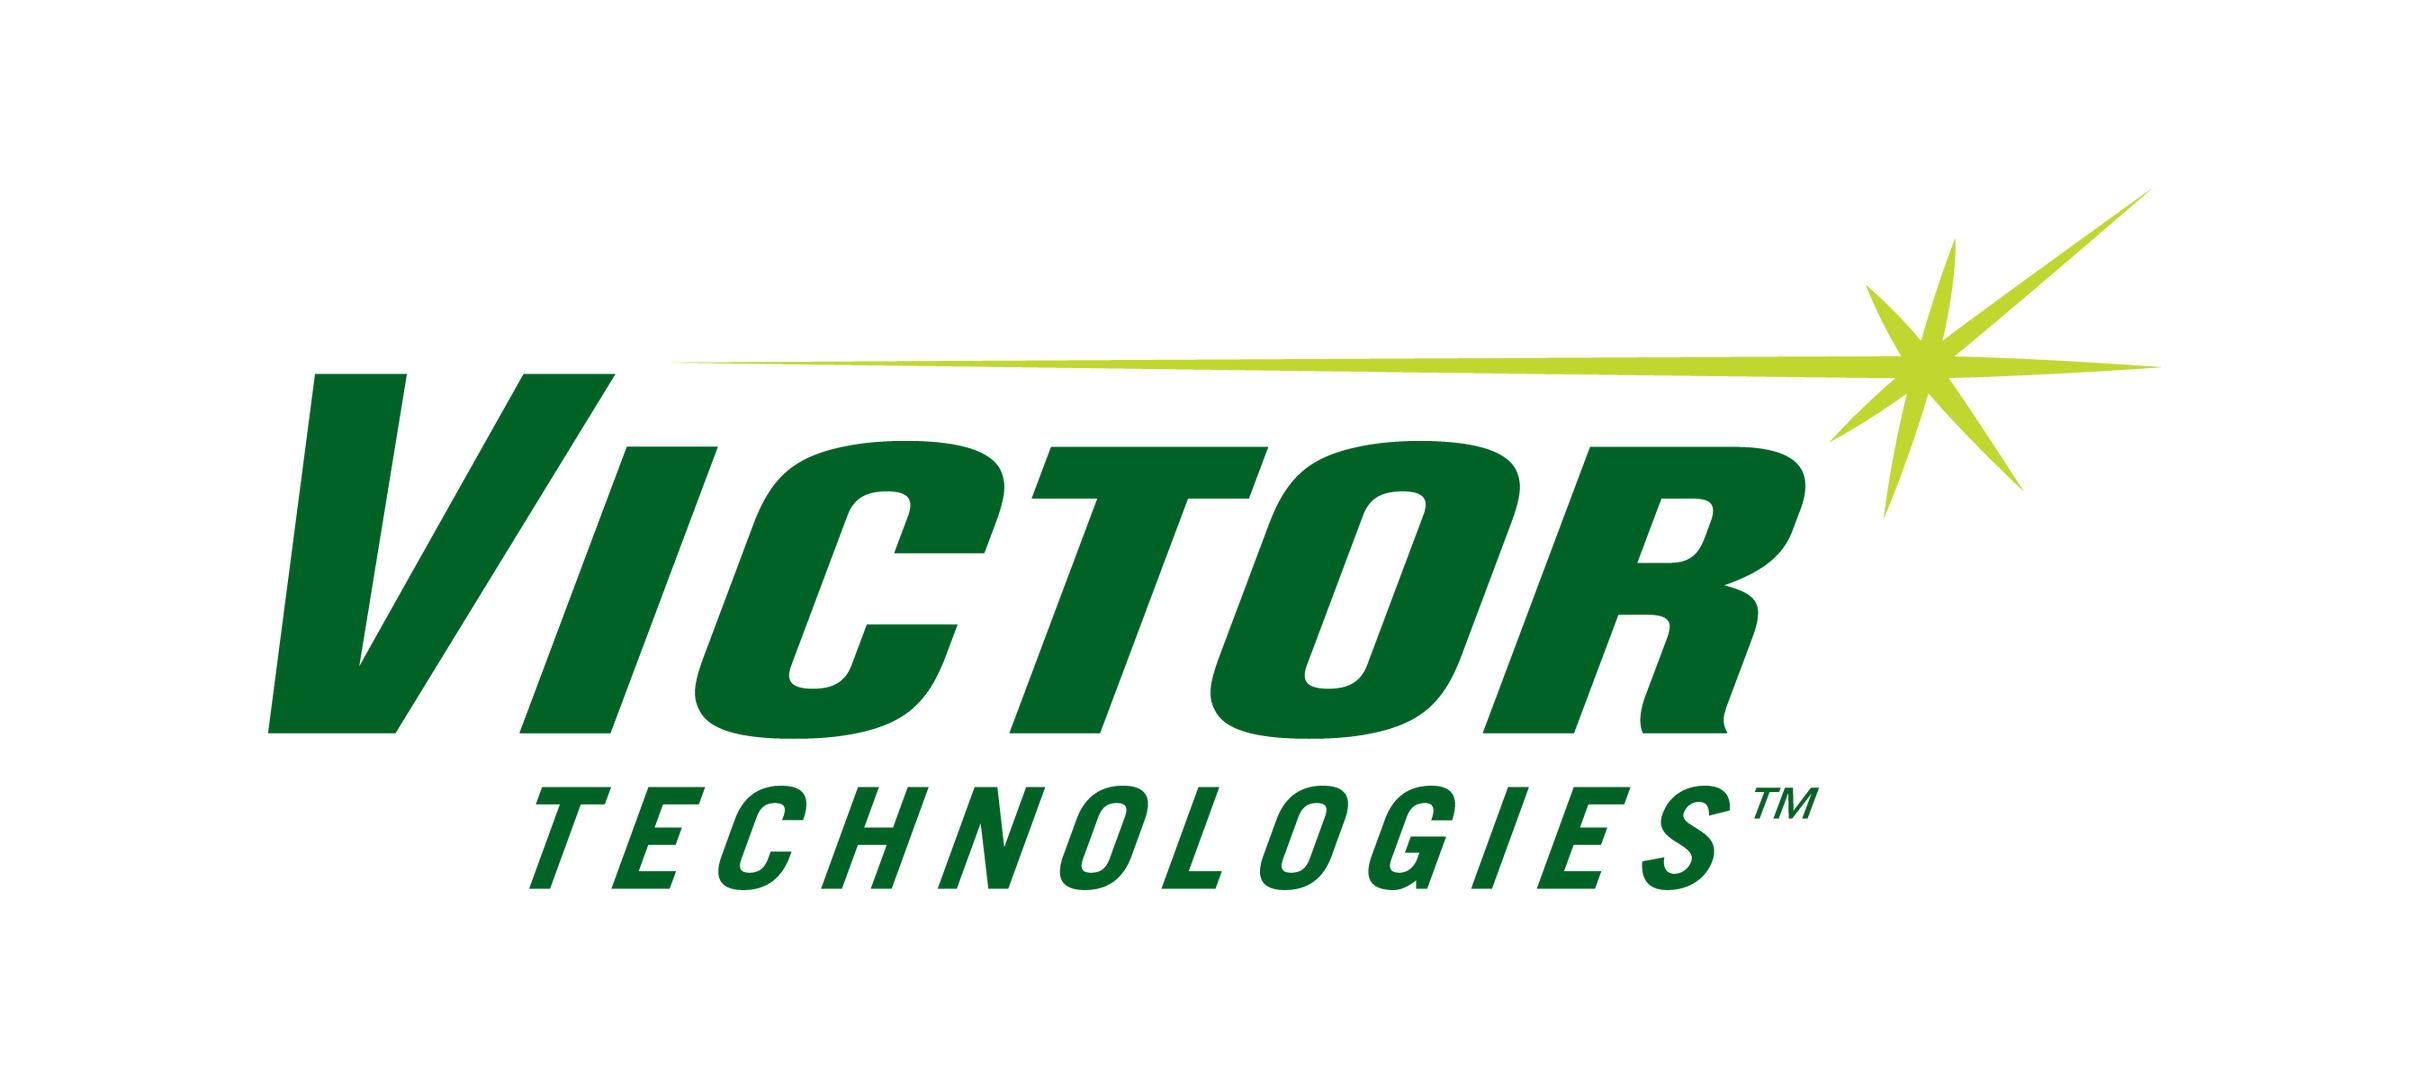 victortechnologies-logo.png